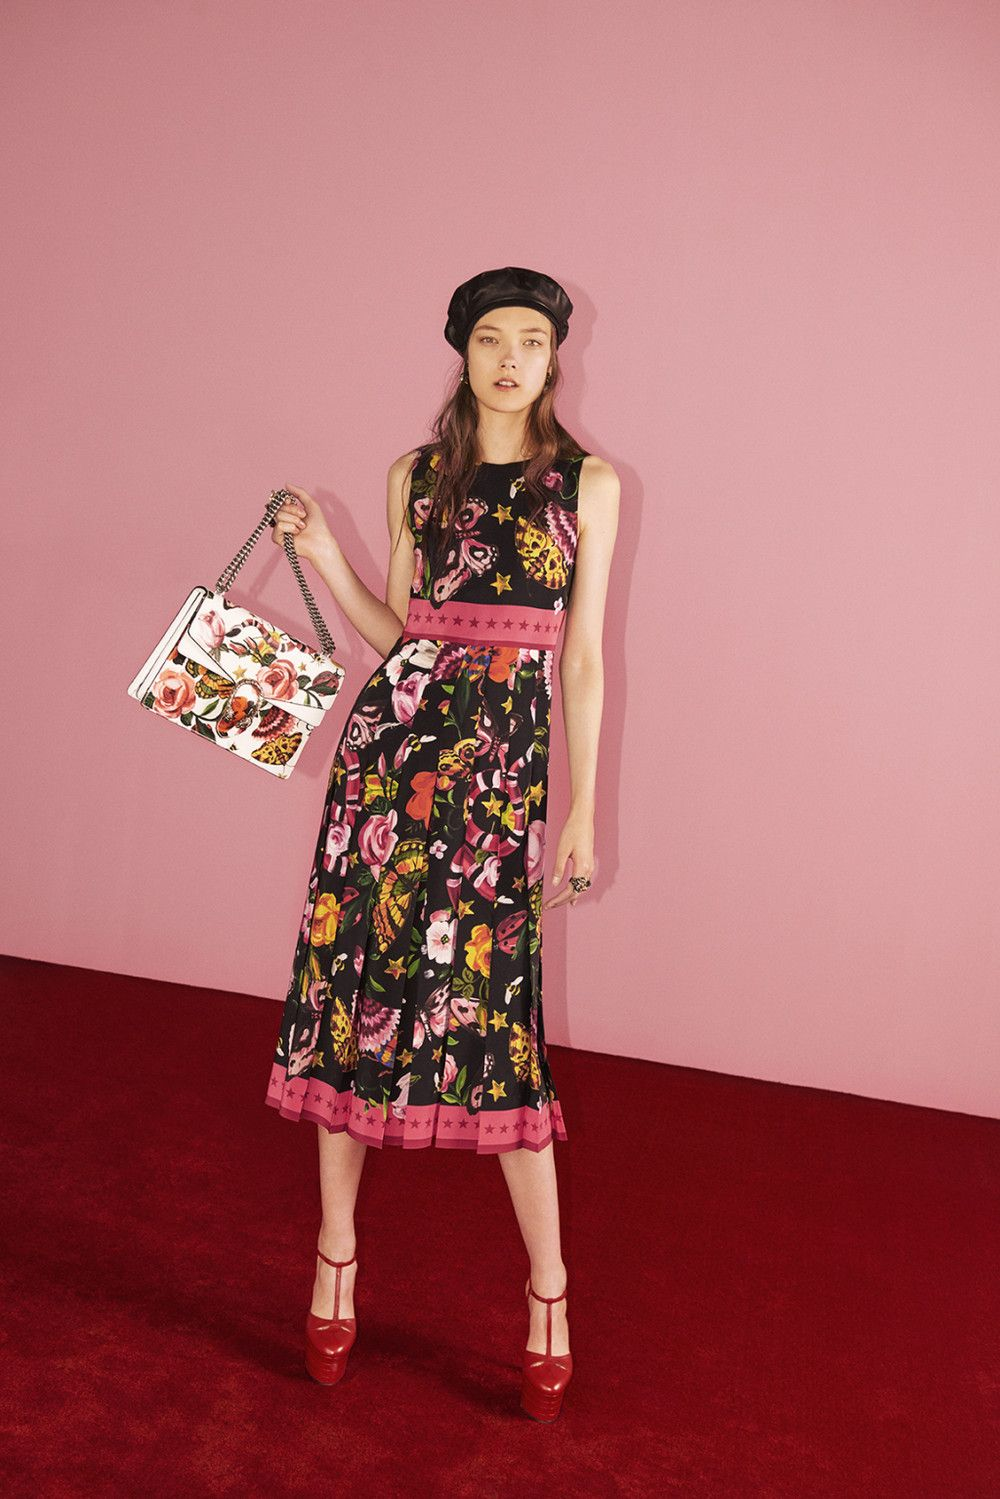 Discussion on this topic: Gucci Garden: Gucci's Online-Only 2019 Capsule Collection, gucci-garden-guccis-online-only-2019-capsule-collection/